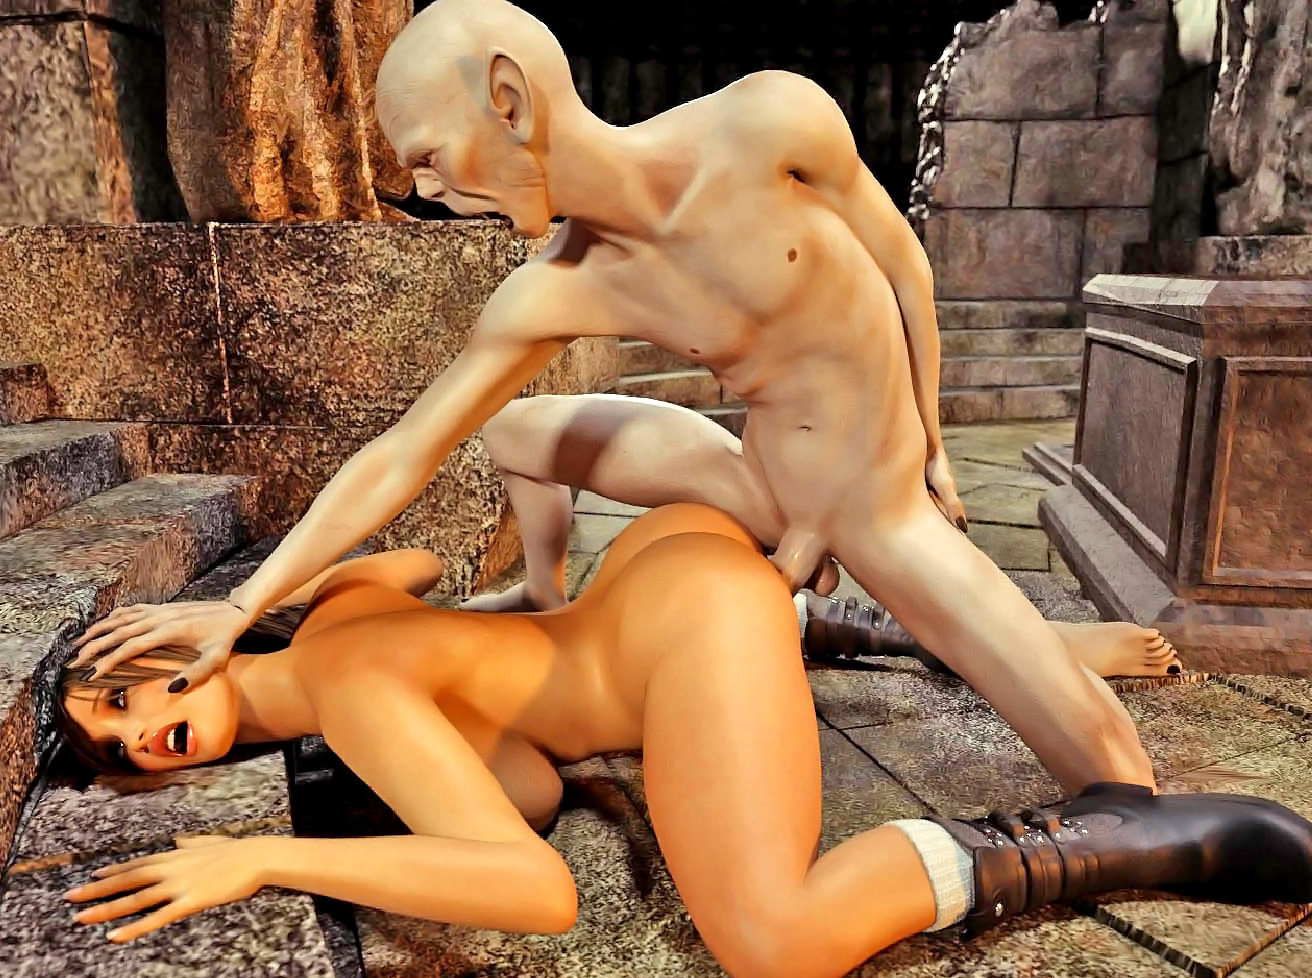 Download video tomb raider monster hentai exposed video